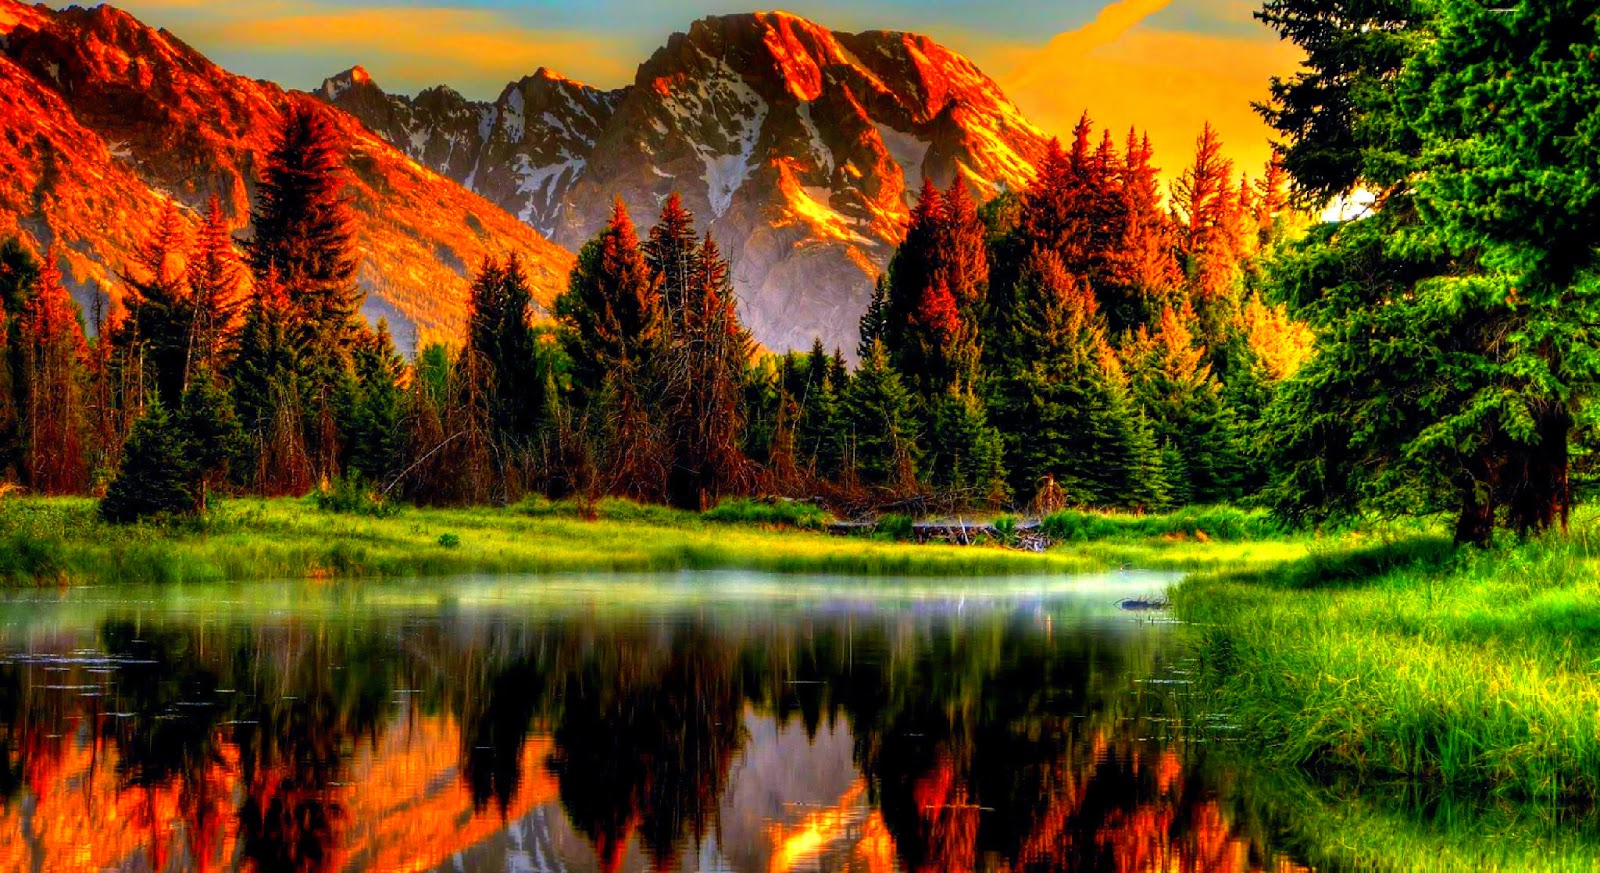 wallpapers Most beautiful places in the world Download 1600x873